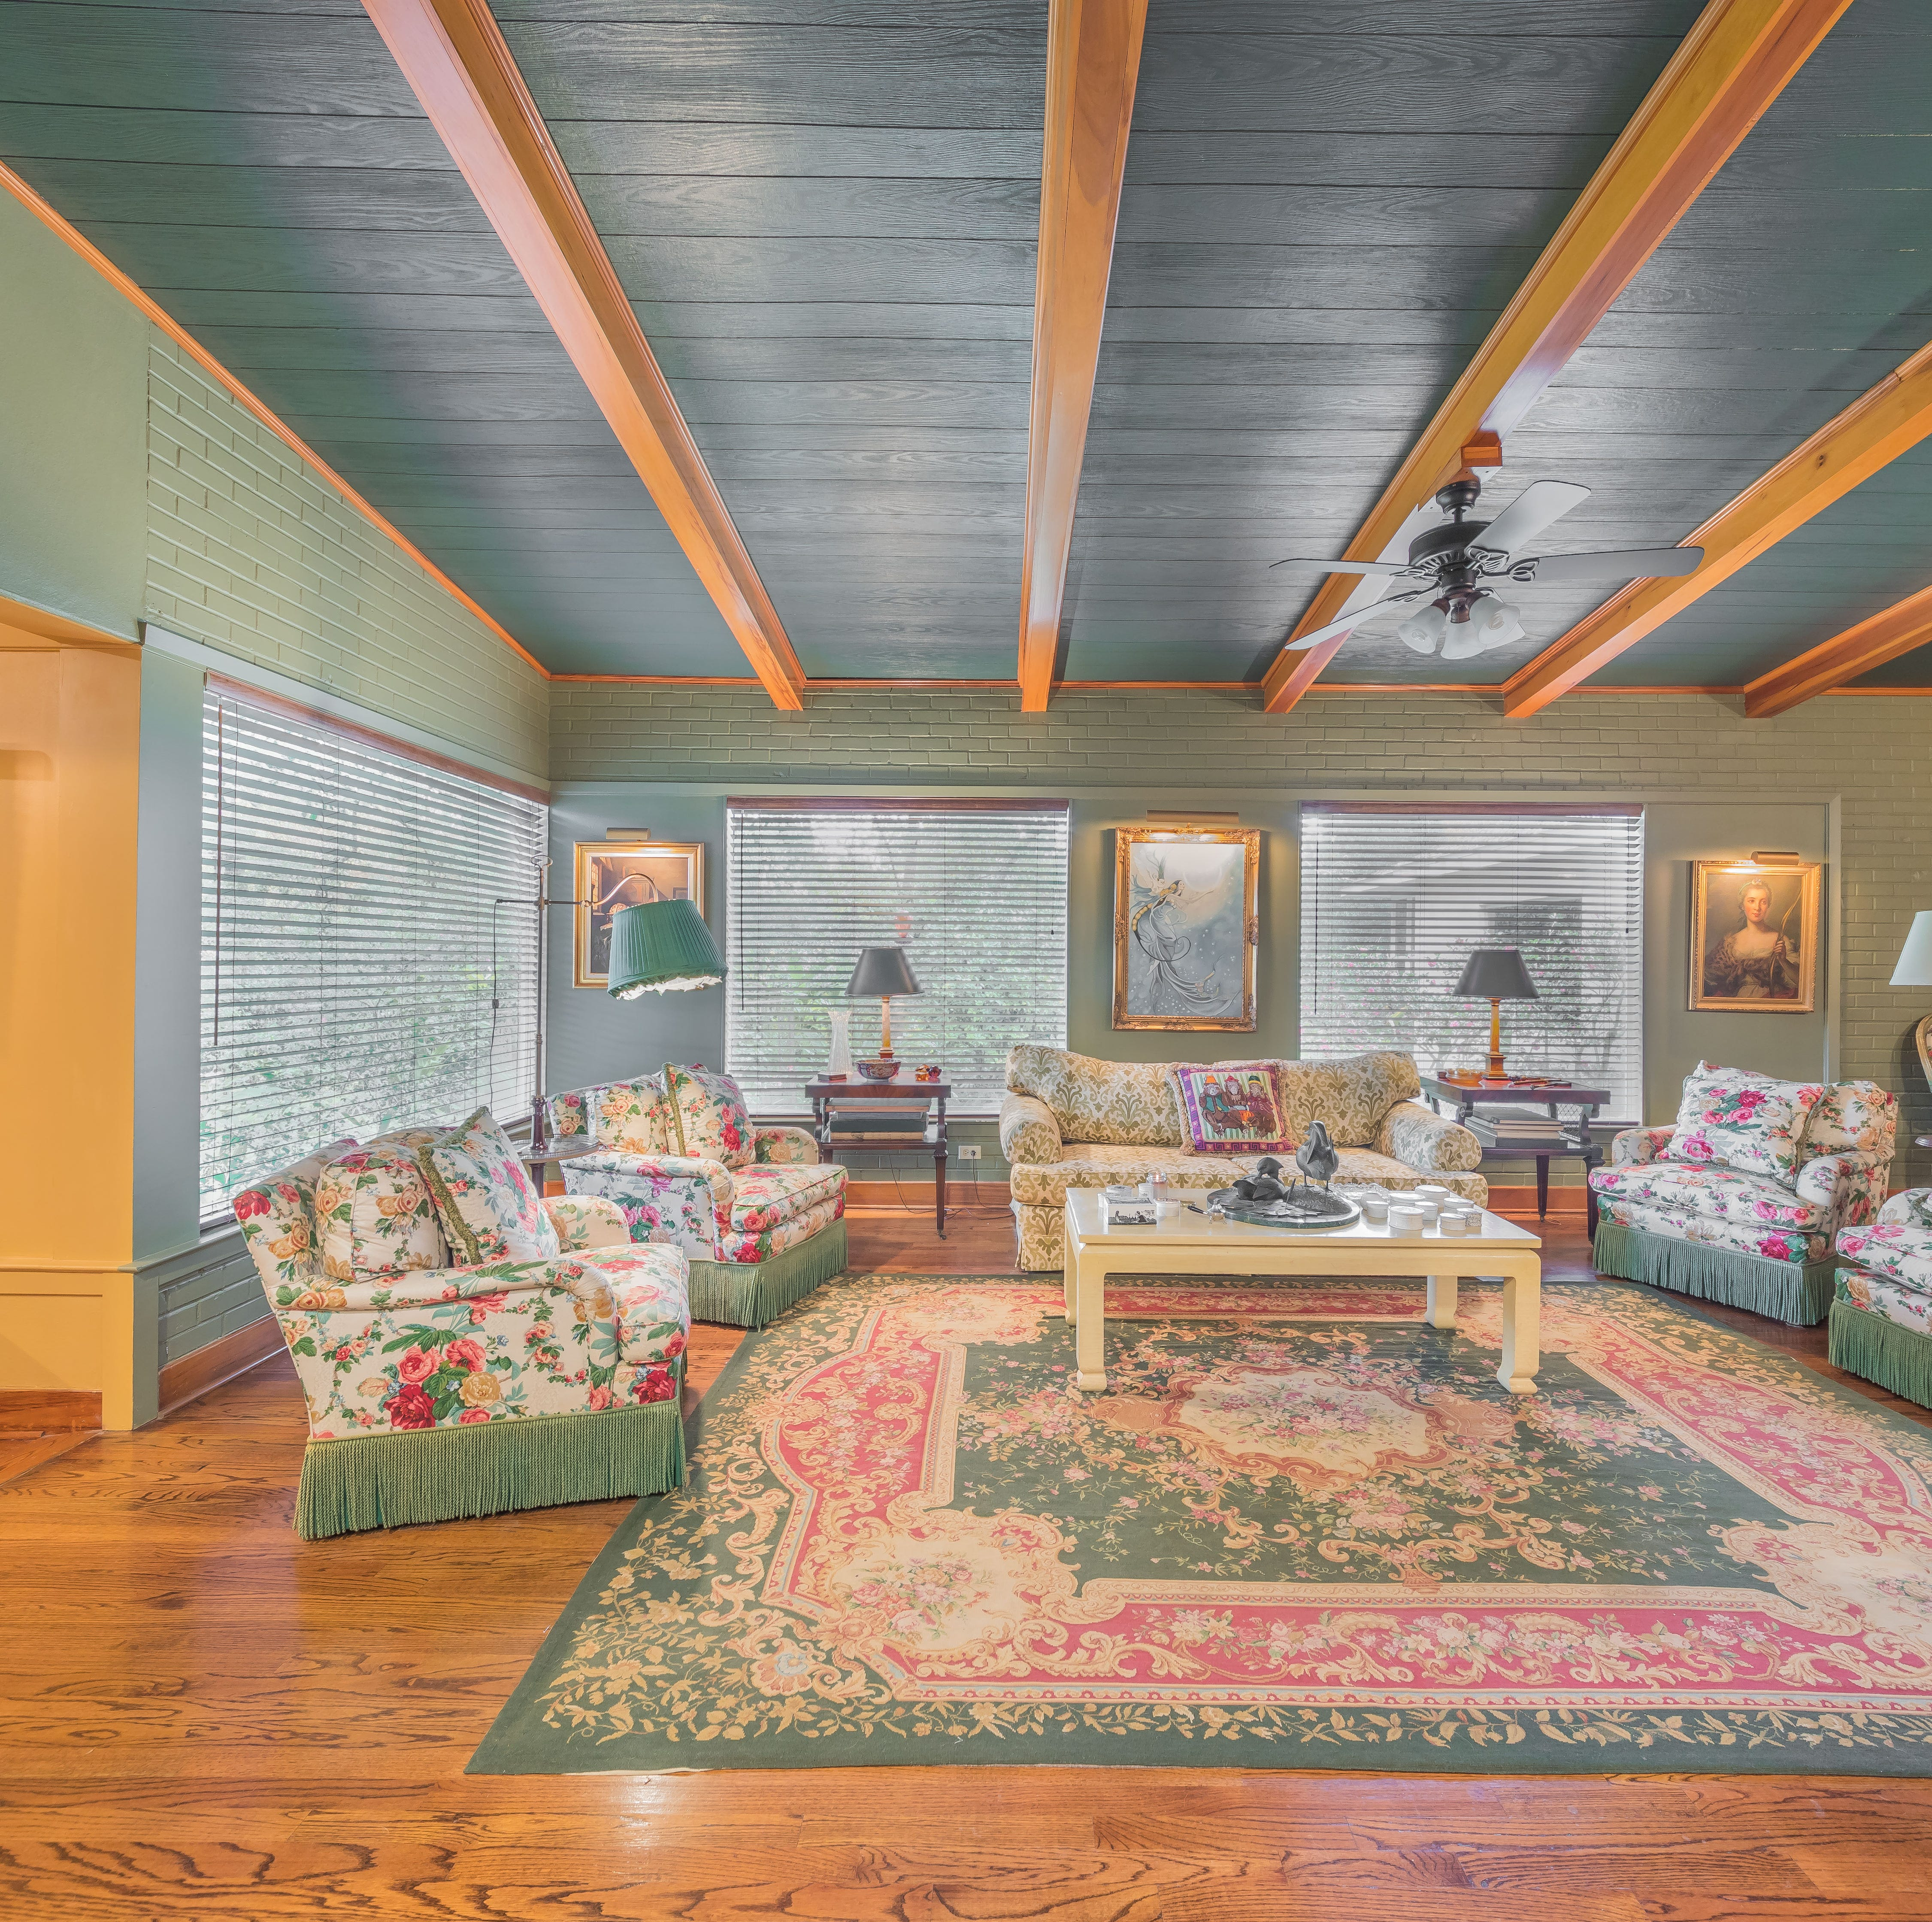 Got $1M? You could own this historic Lafayette mansion